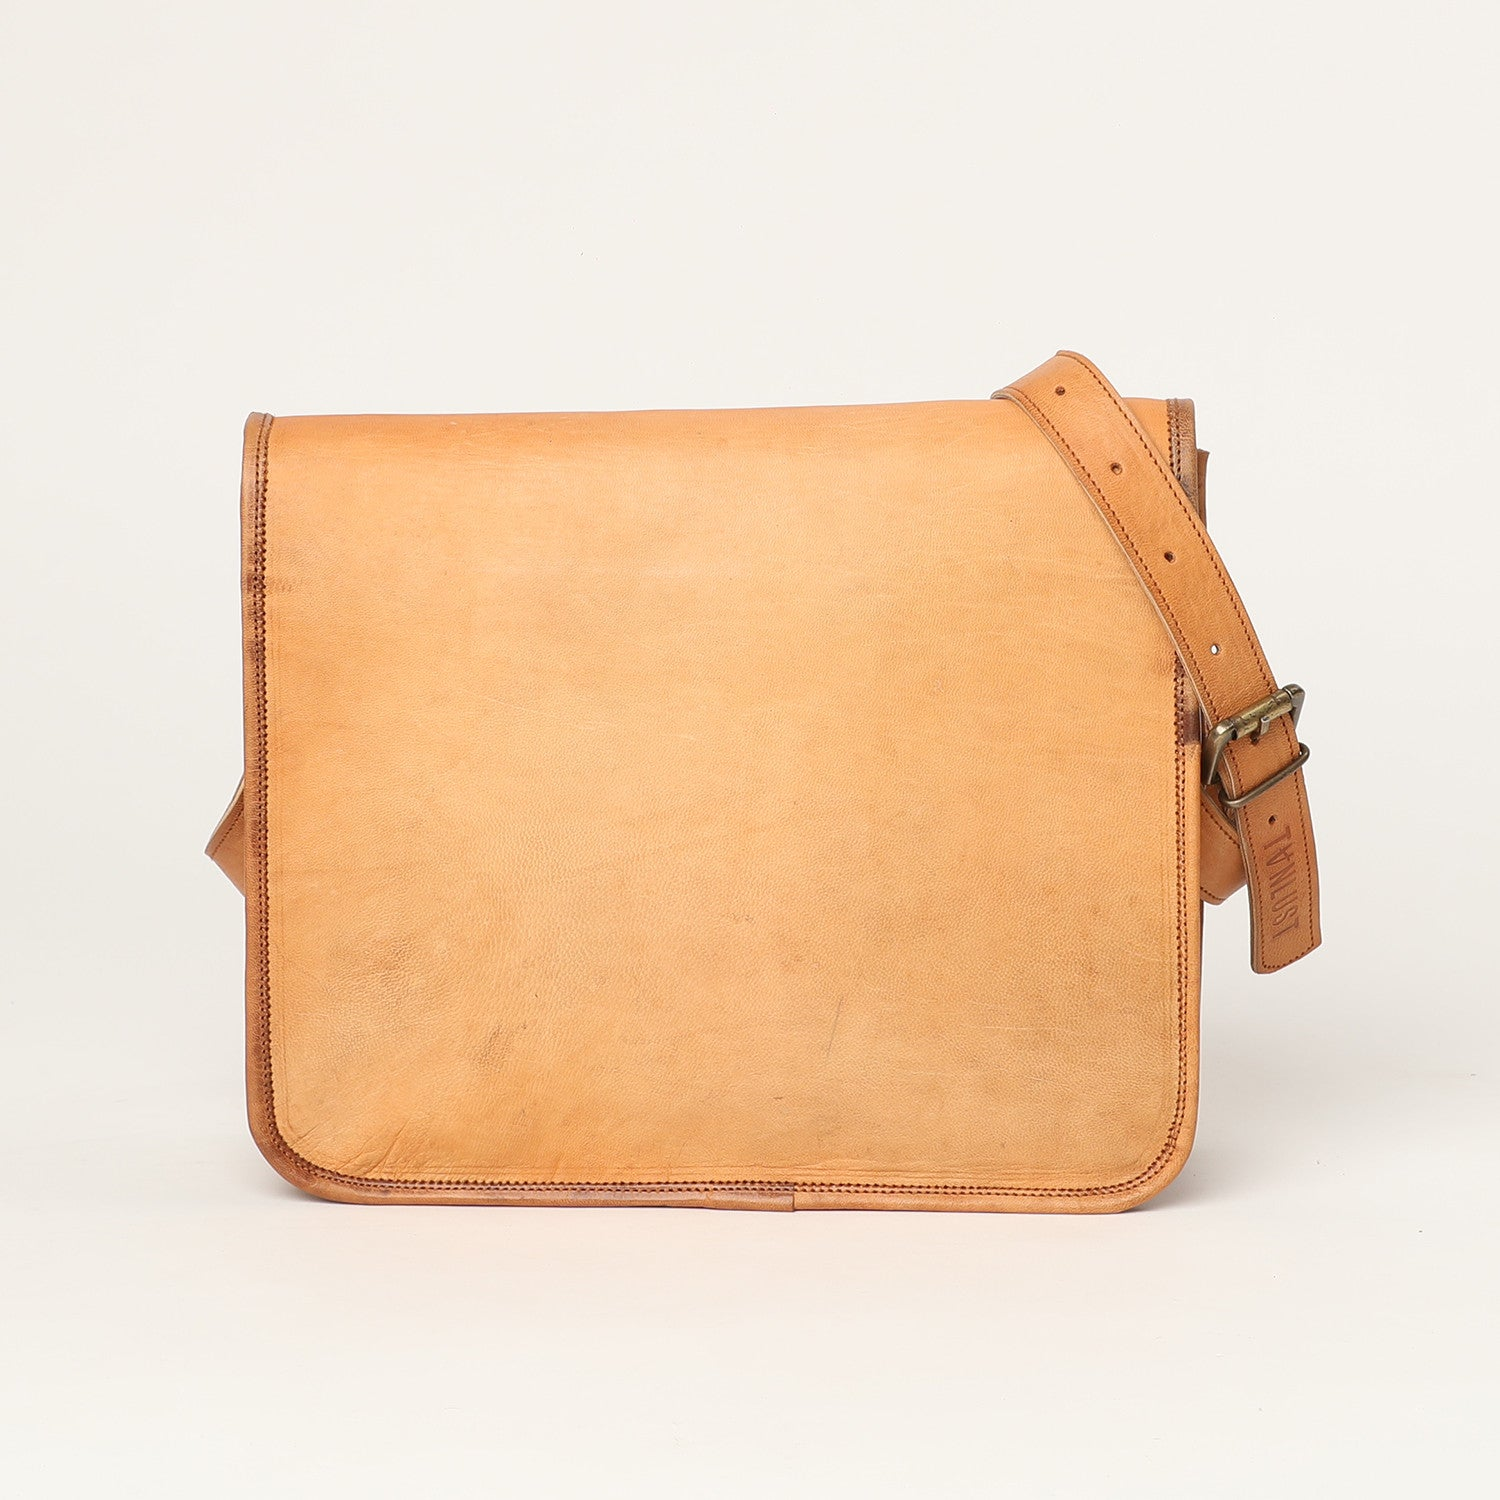 IPAD bag - leather bags